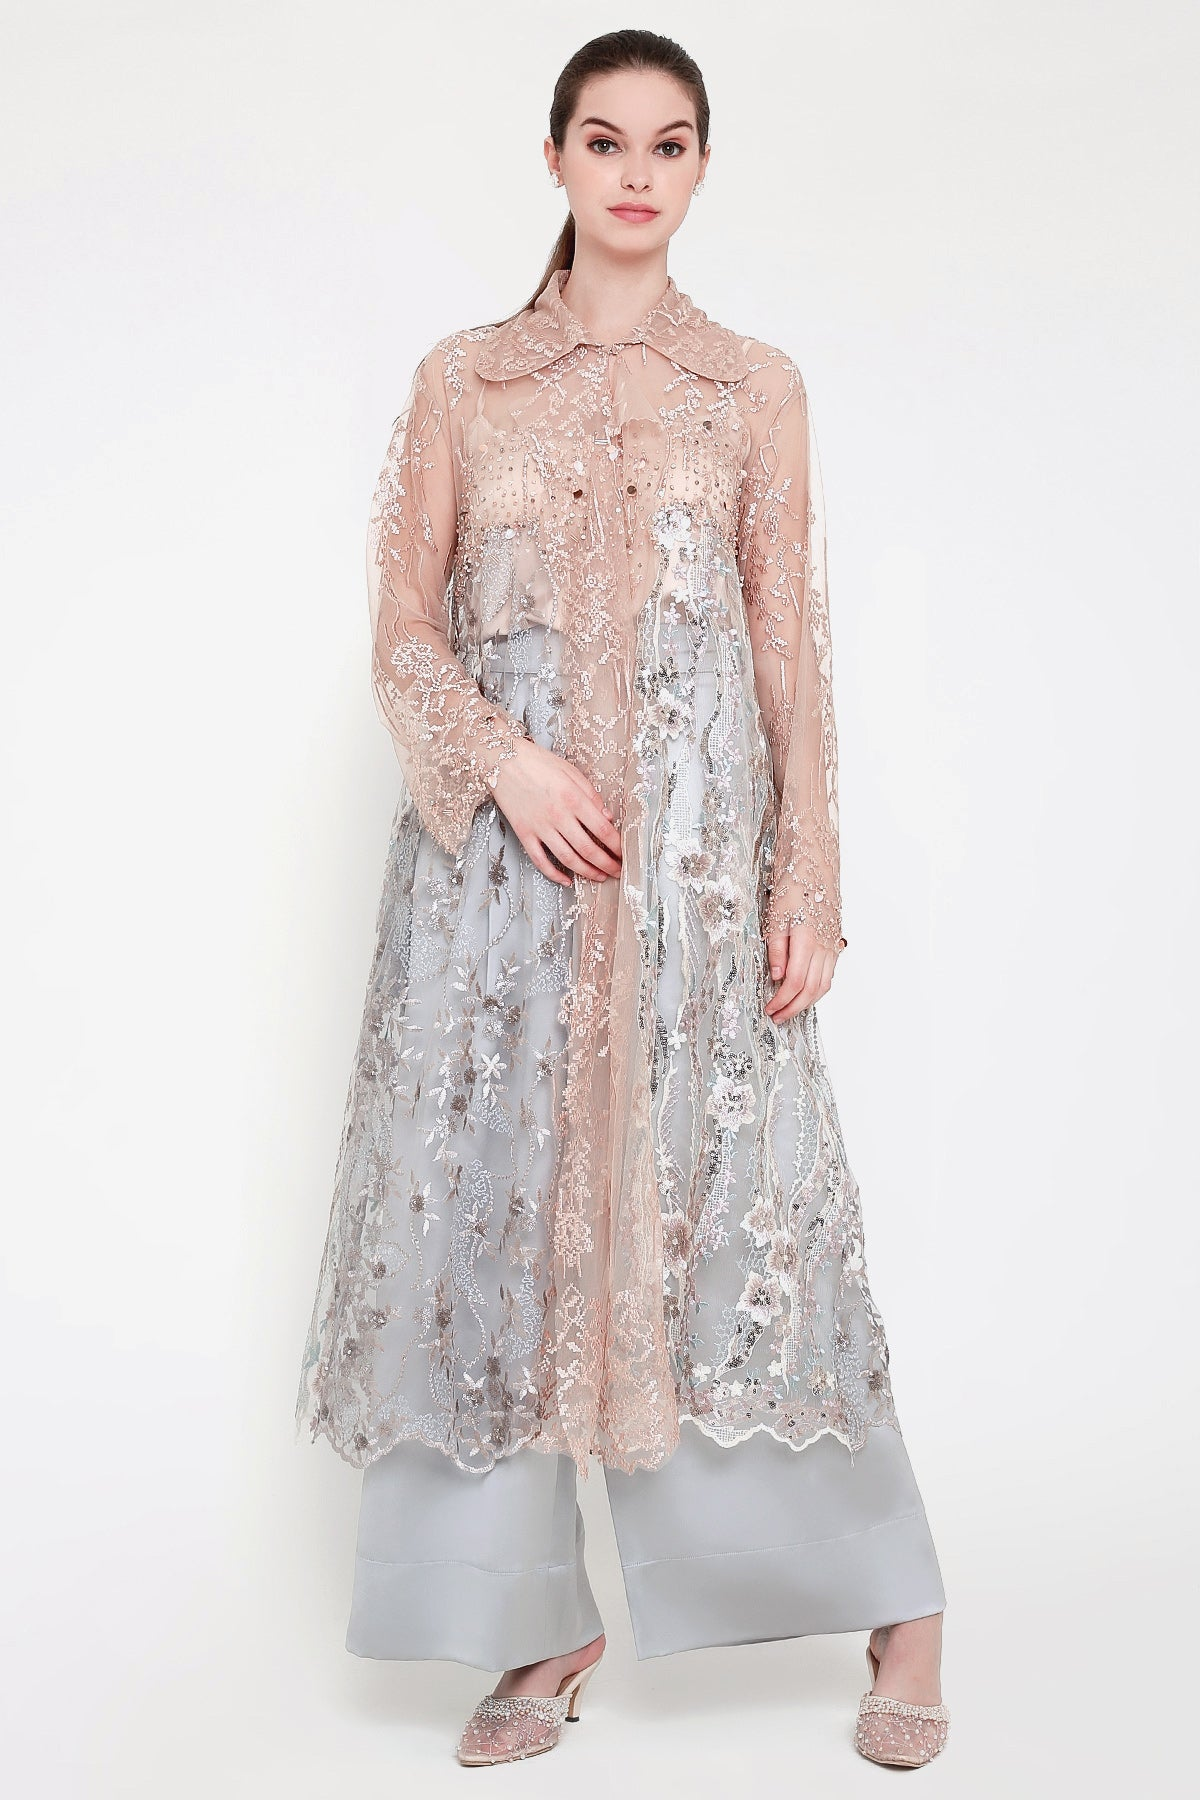 Riviera Long Embroidered Outer Dress in Champagne